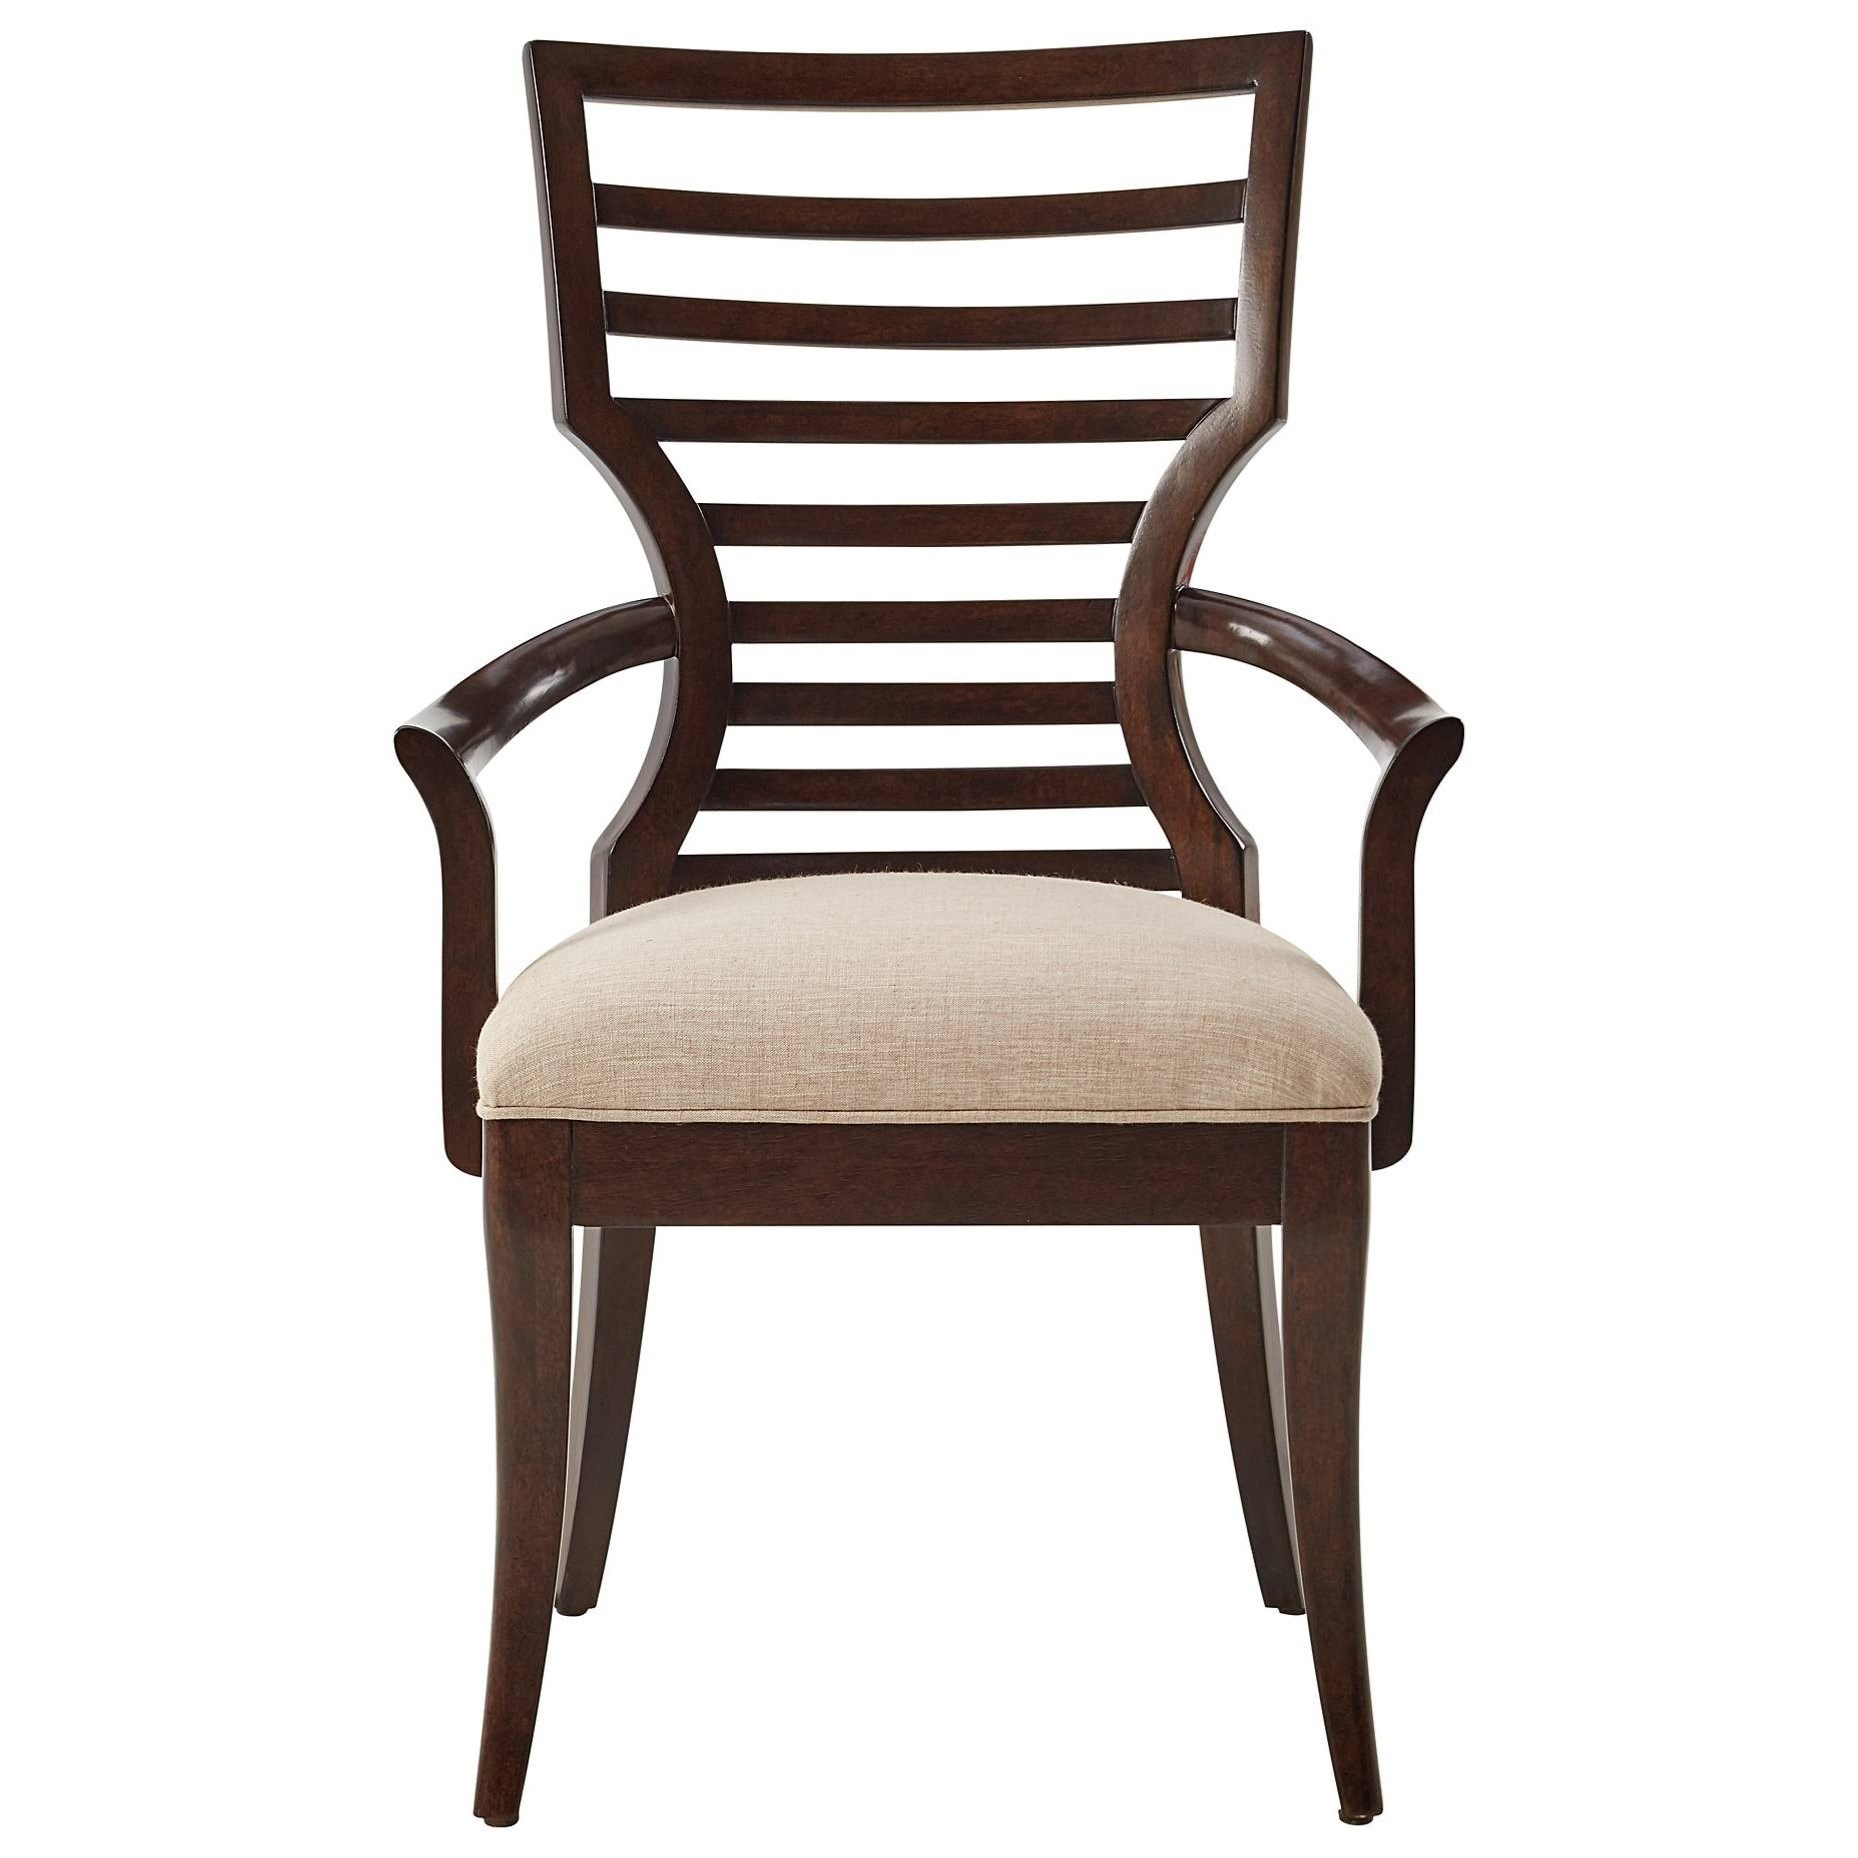 Stanley furniture virage 696 11 70 arm chair with modern for Stanley furniture